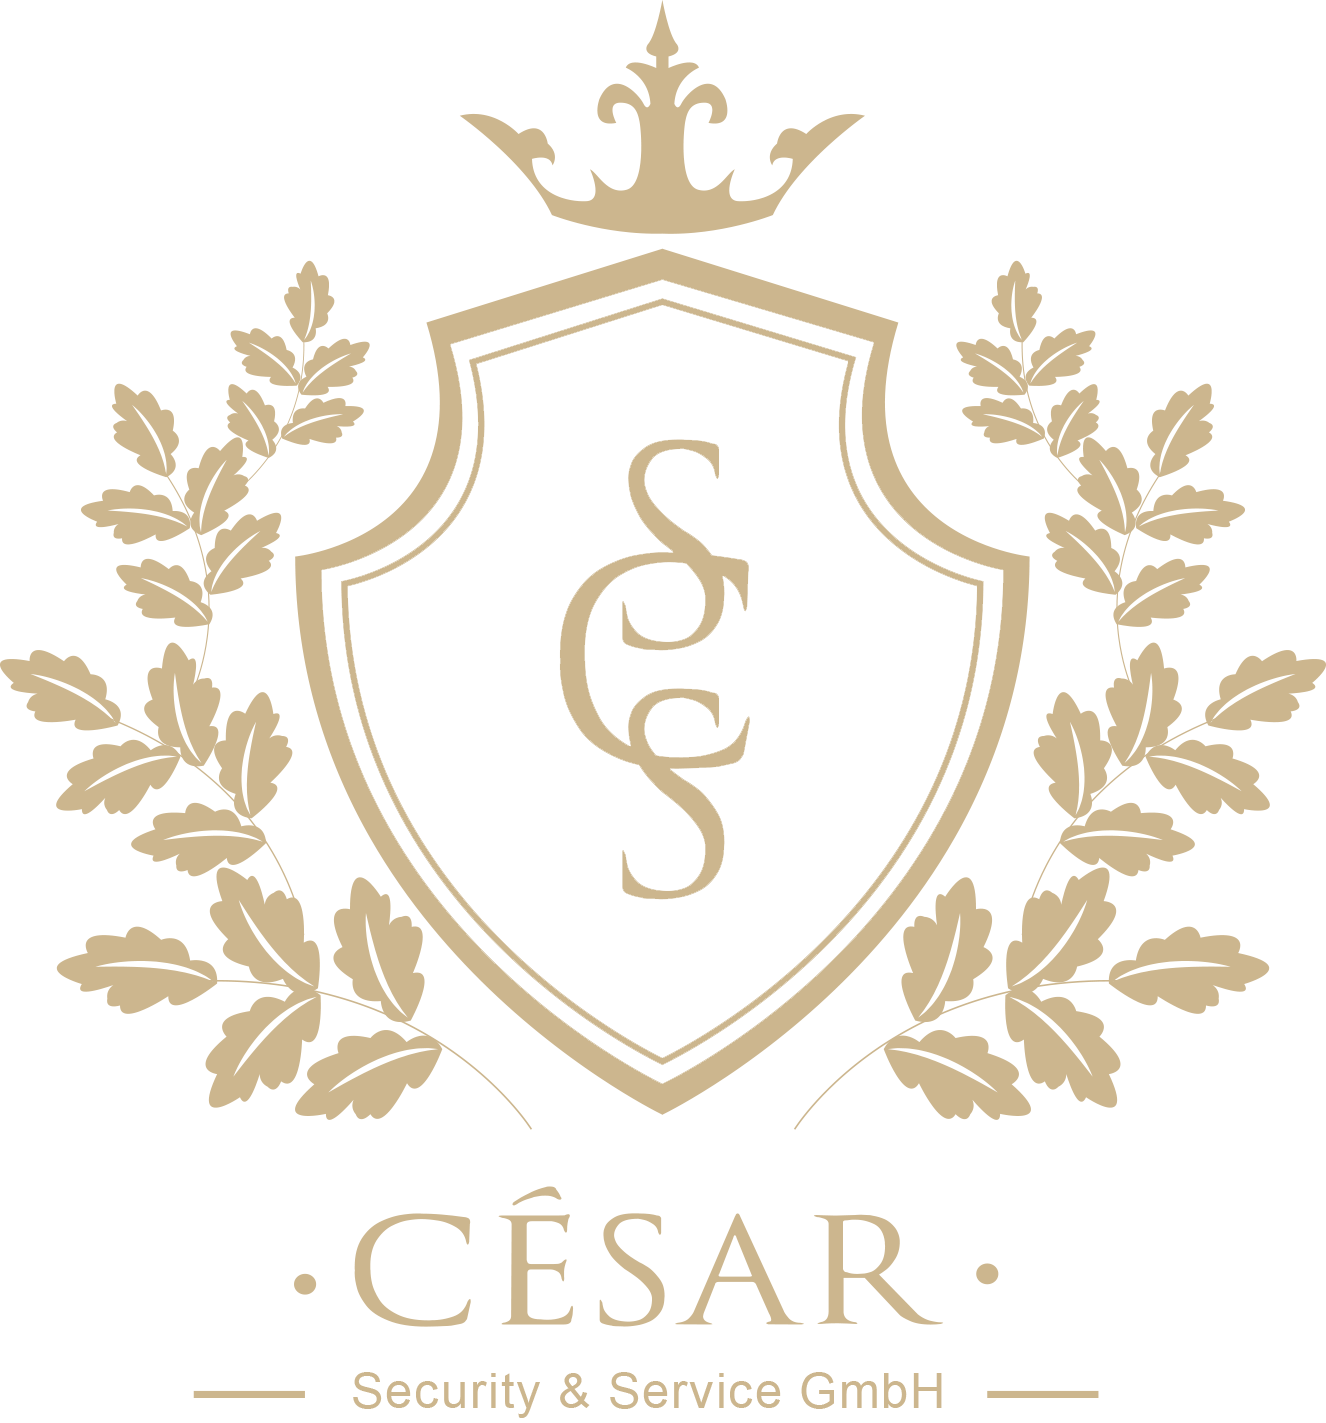 Cesar Security & Service GmbH